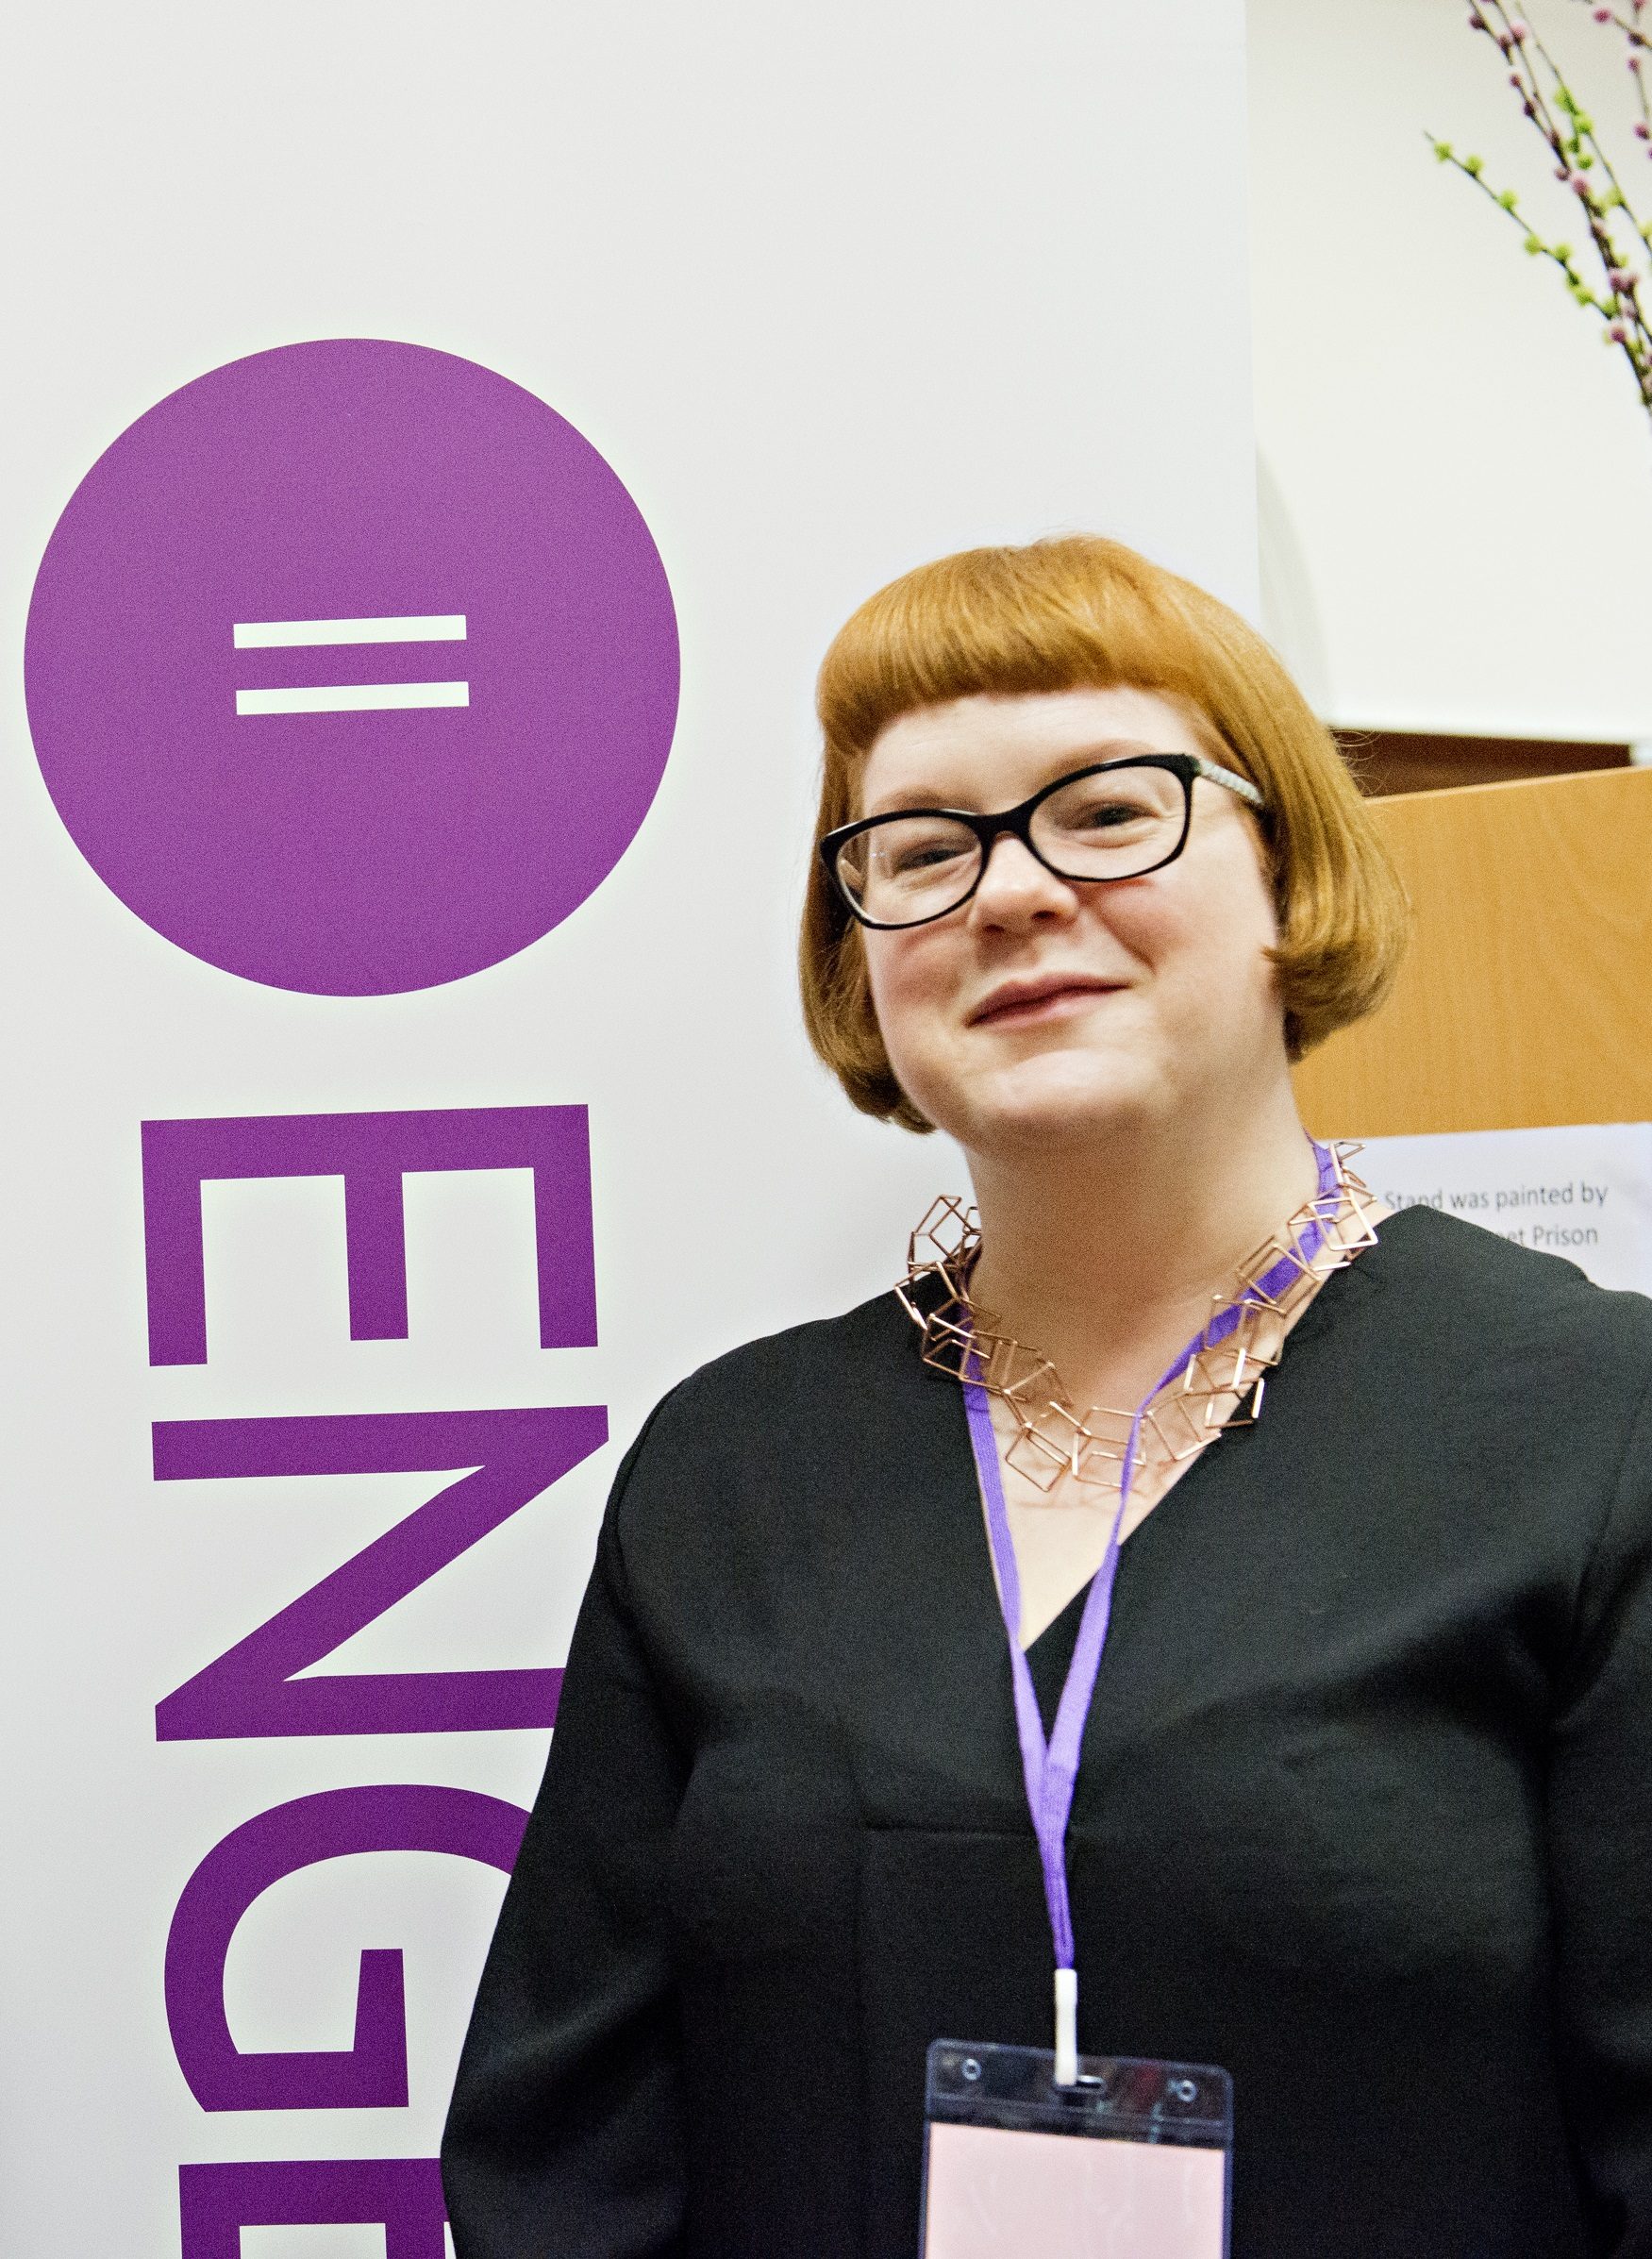 Image of Emma Ritch wearing glasses standing in front of a pop up banner with the Engender logo.